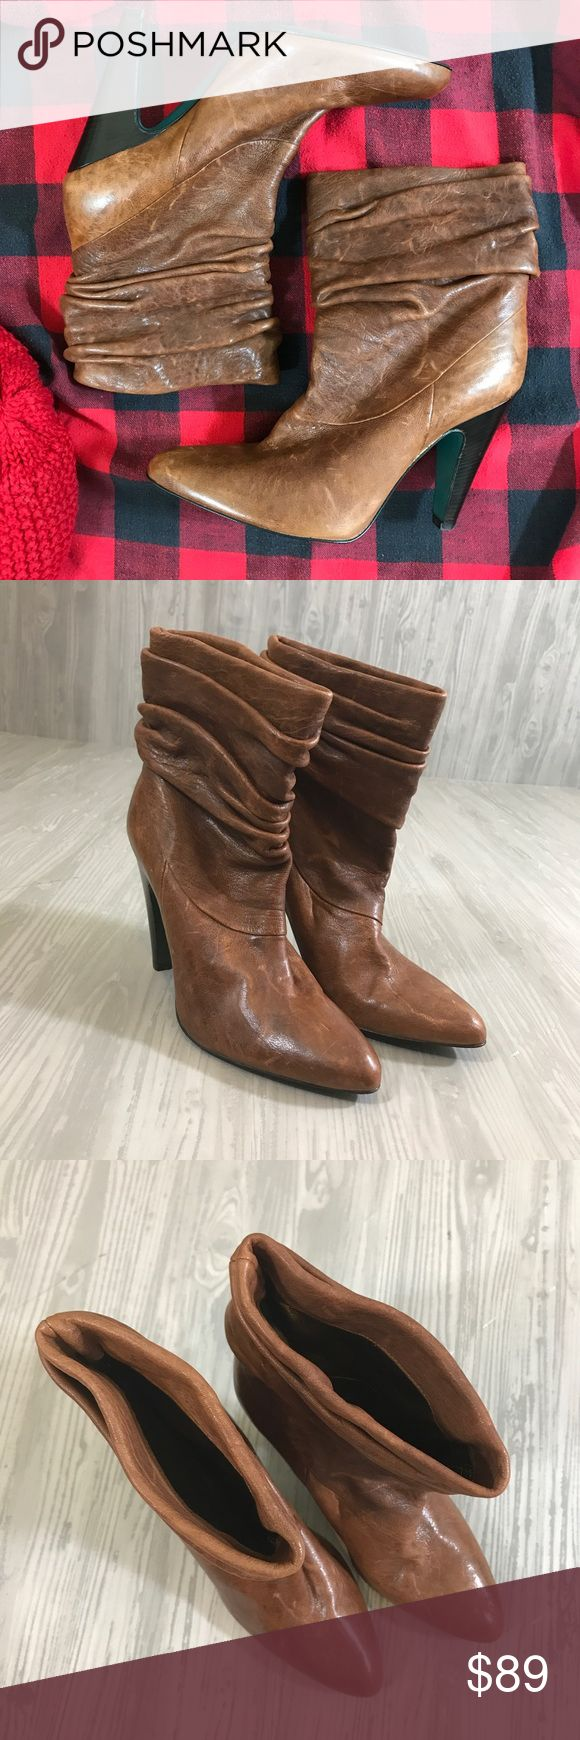 $394 BCBGMAXAZRIA iradia slouch ankle boot sz 7.5 Iradia distressed luggage boots  $394 bcbg bcbgmaxazria women's iradia slouch ankle boot shoes, luggage  US 7 1/2 (7.5) boots are in excellent condition and have only very minimal wear. BCBGMaxAzria Shoes Ankle Boots & Booties